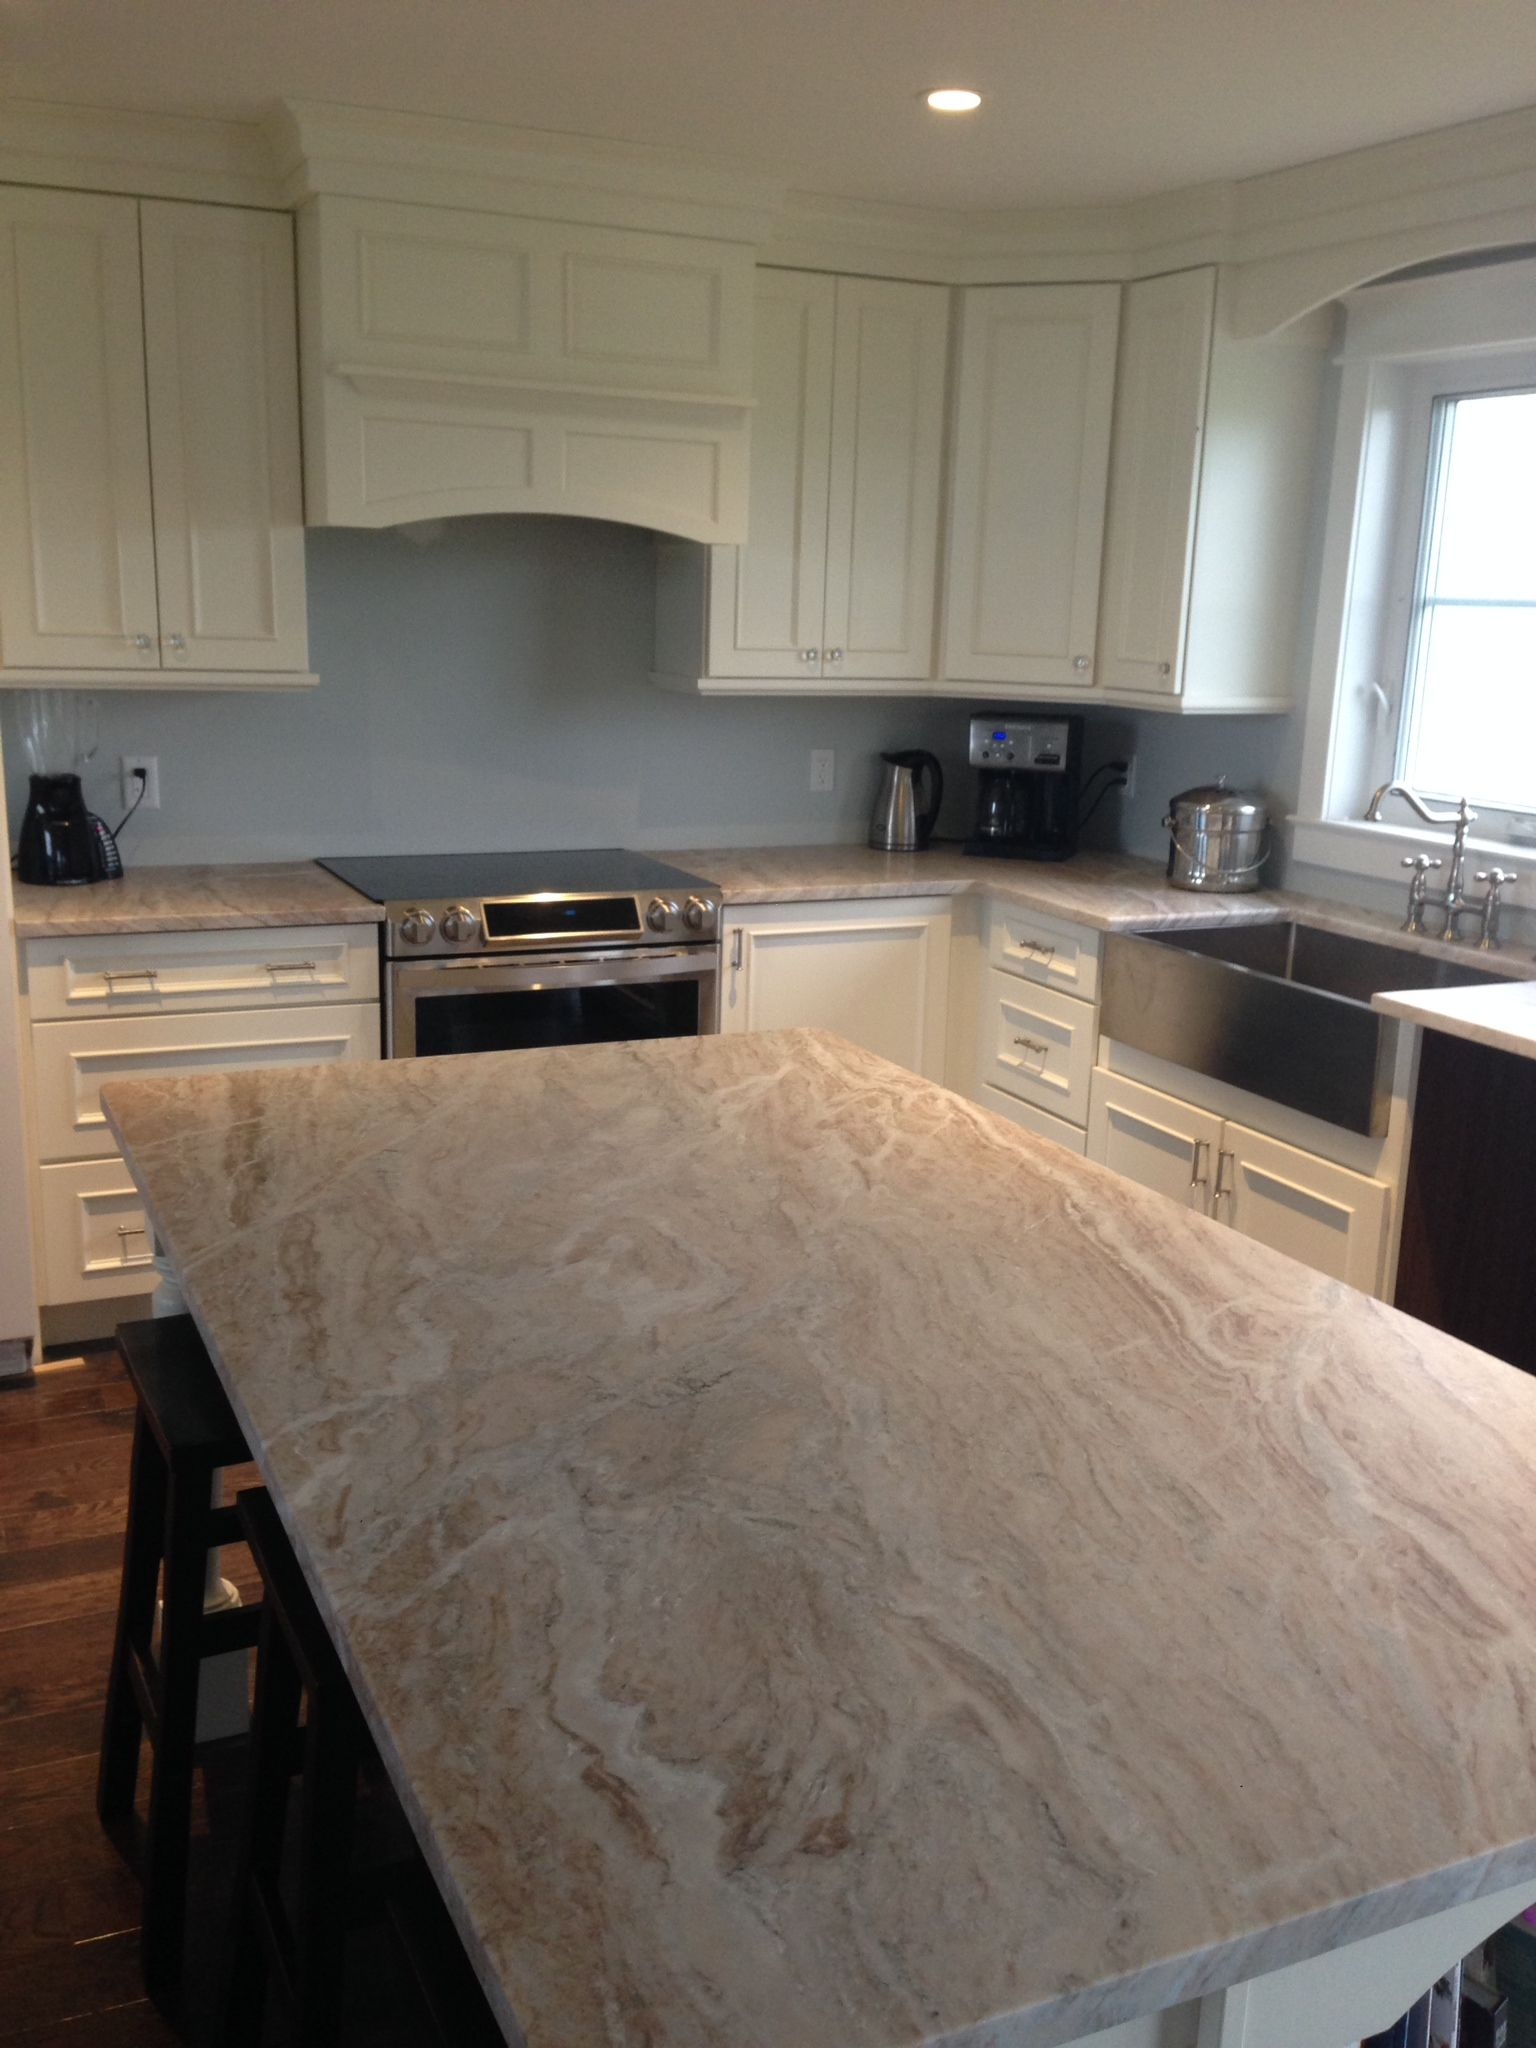 Fantasy Brow Quartzite Counter With Leathered Finish Kitchen